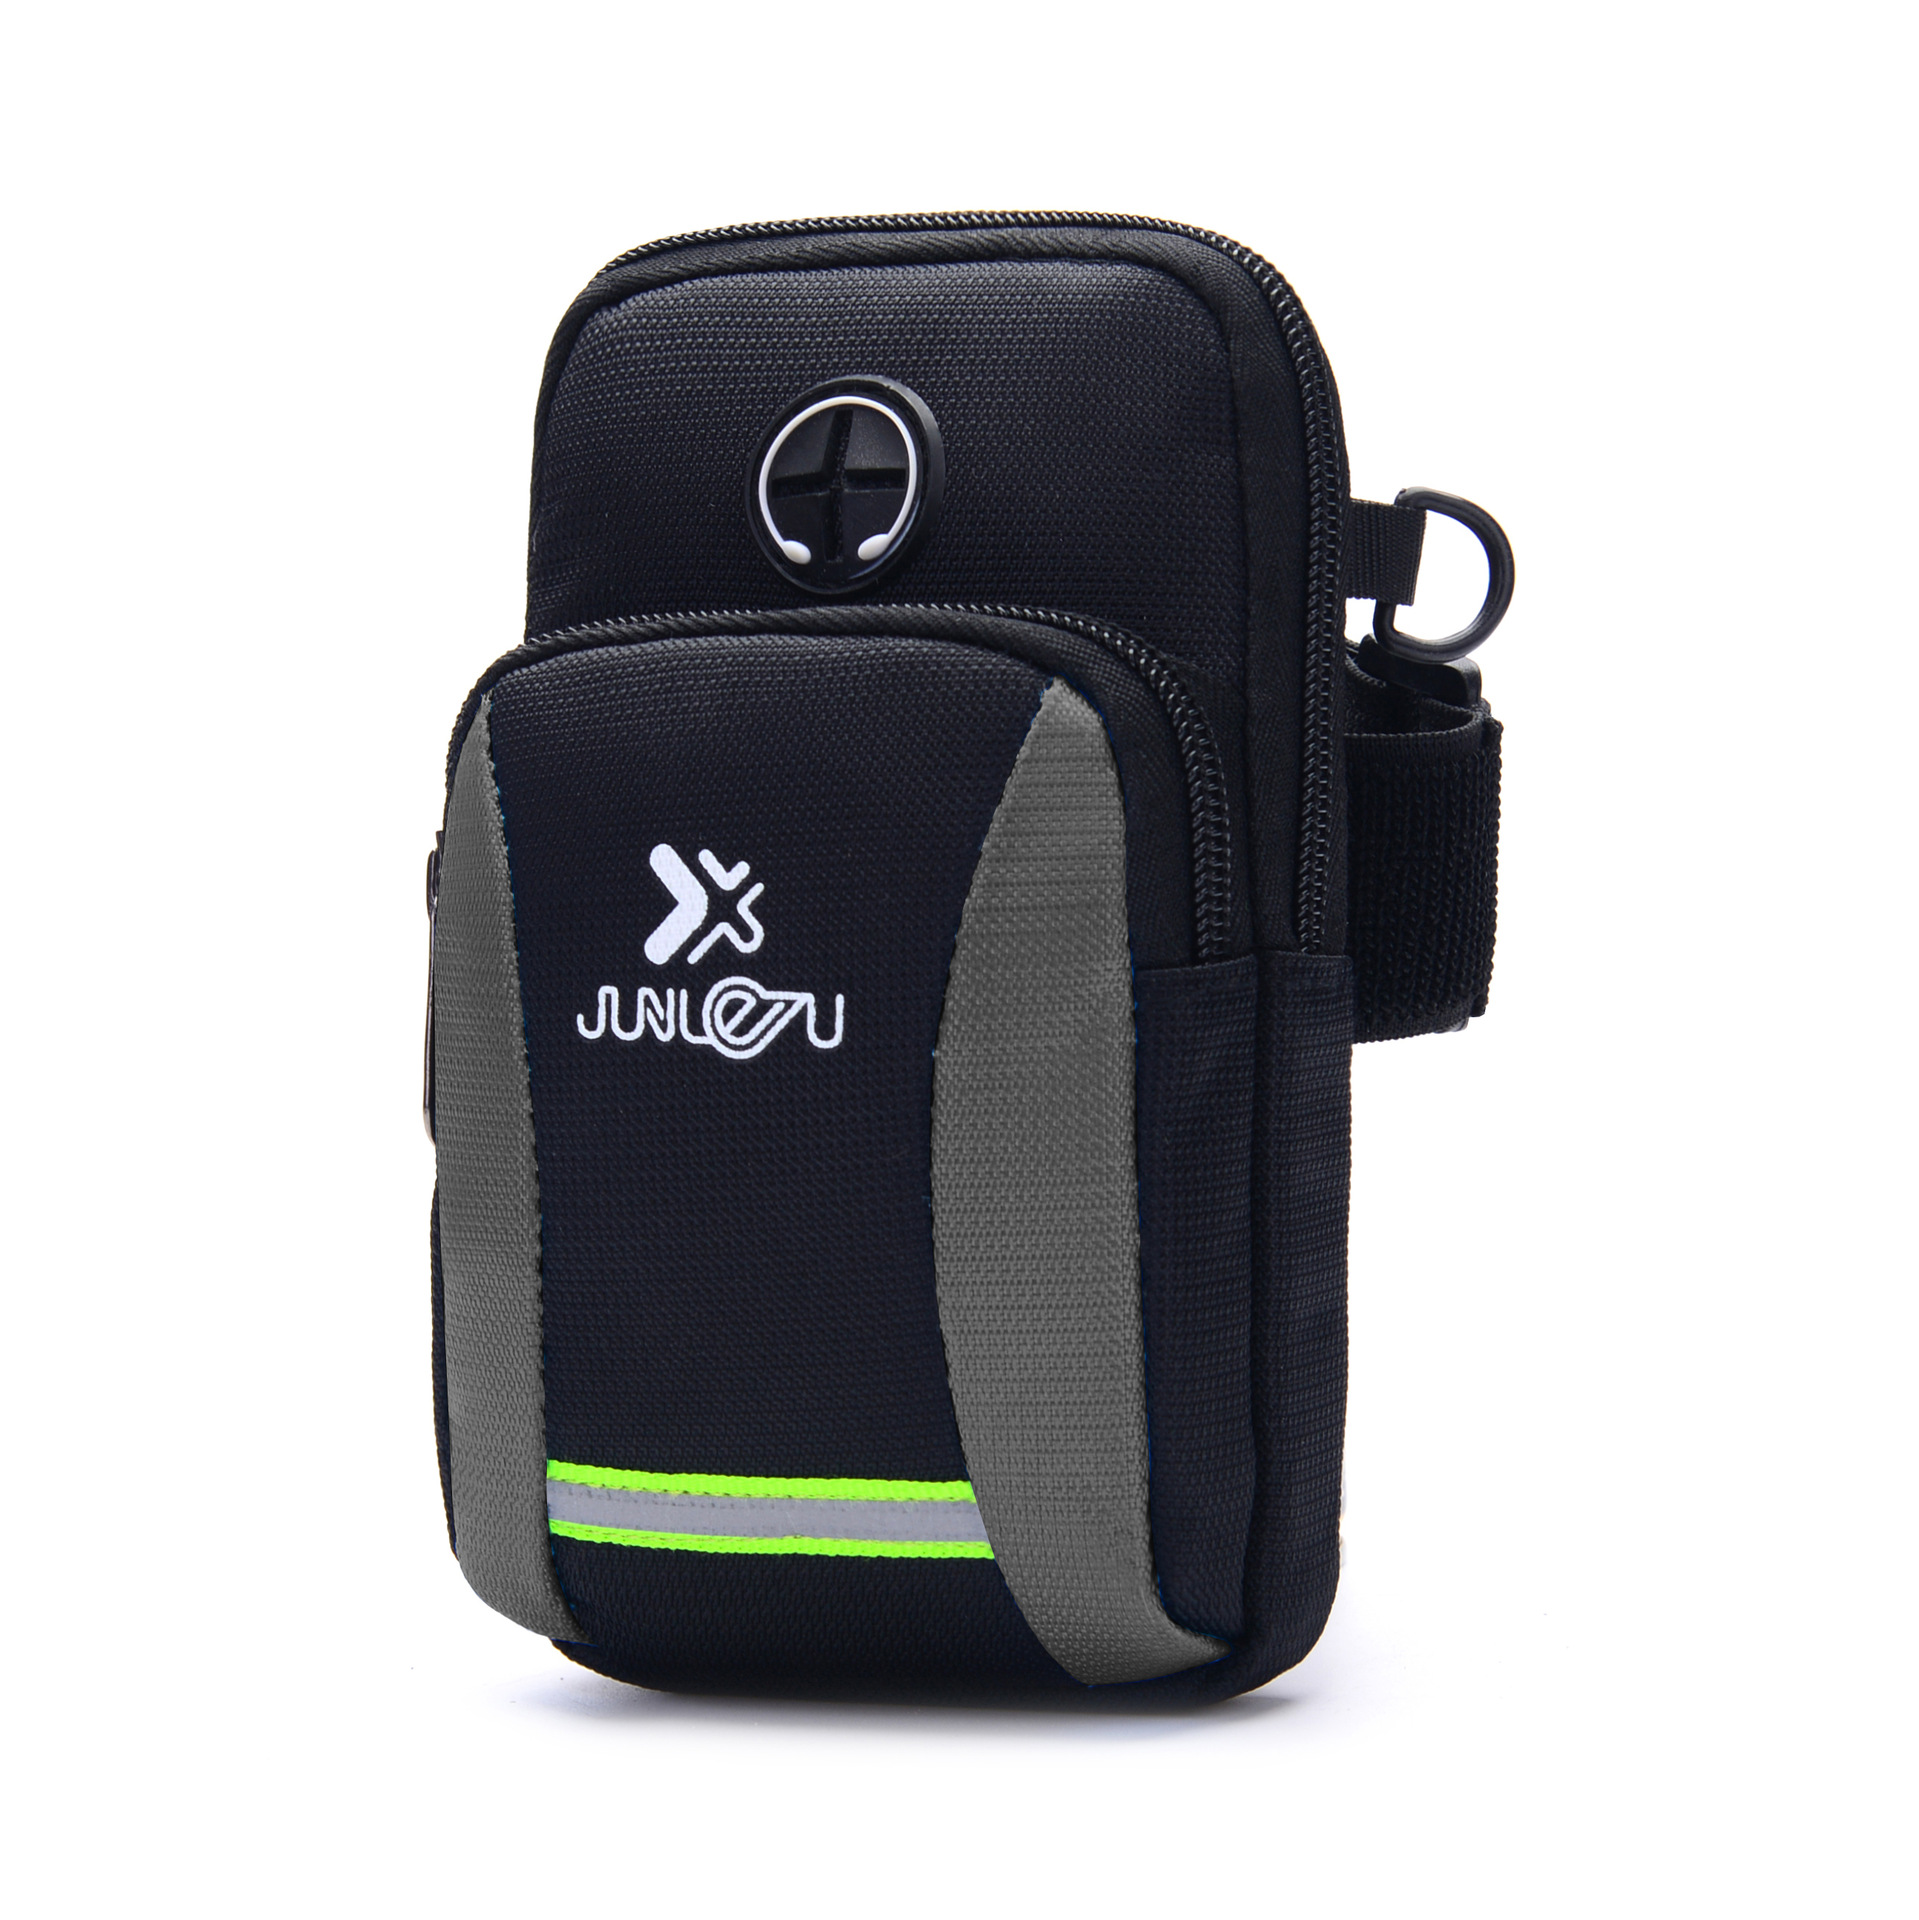 Universal outdoor sports bycicle accerries gym running waterproof phone arm bag for iPhone samsung pouch bags